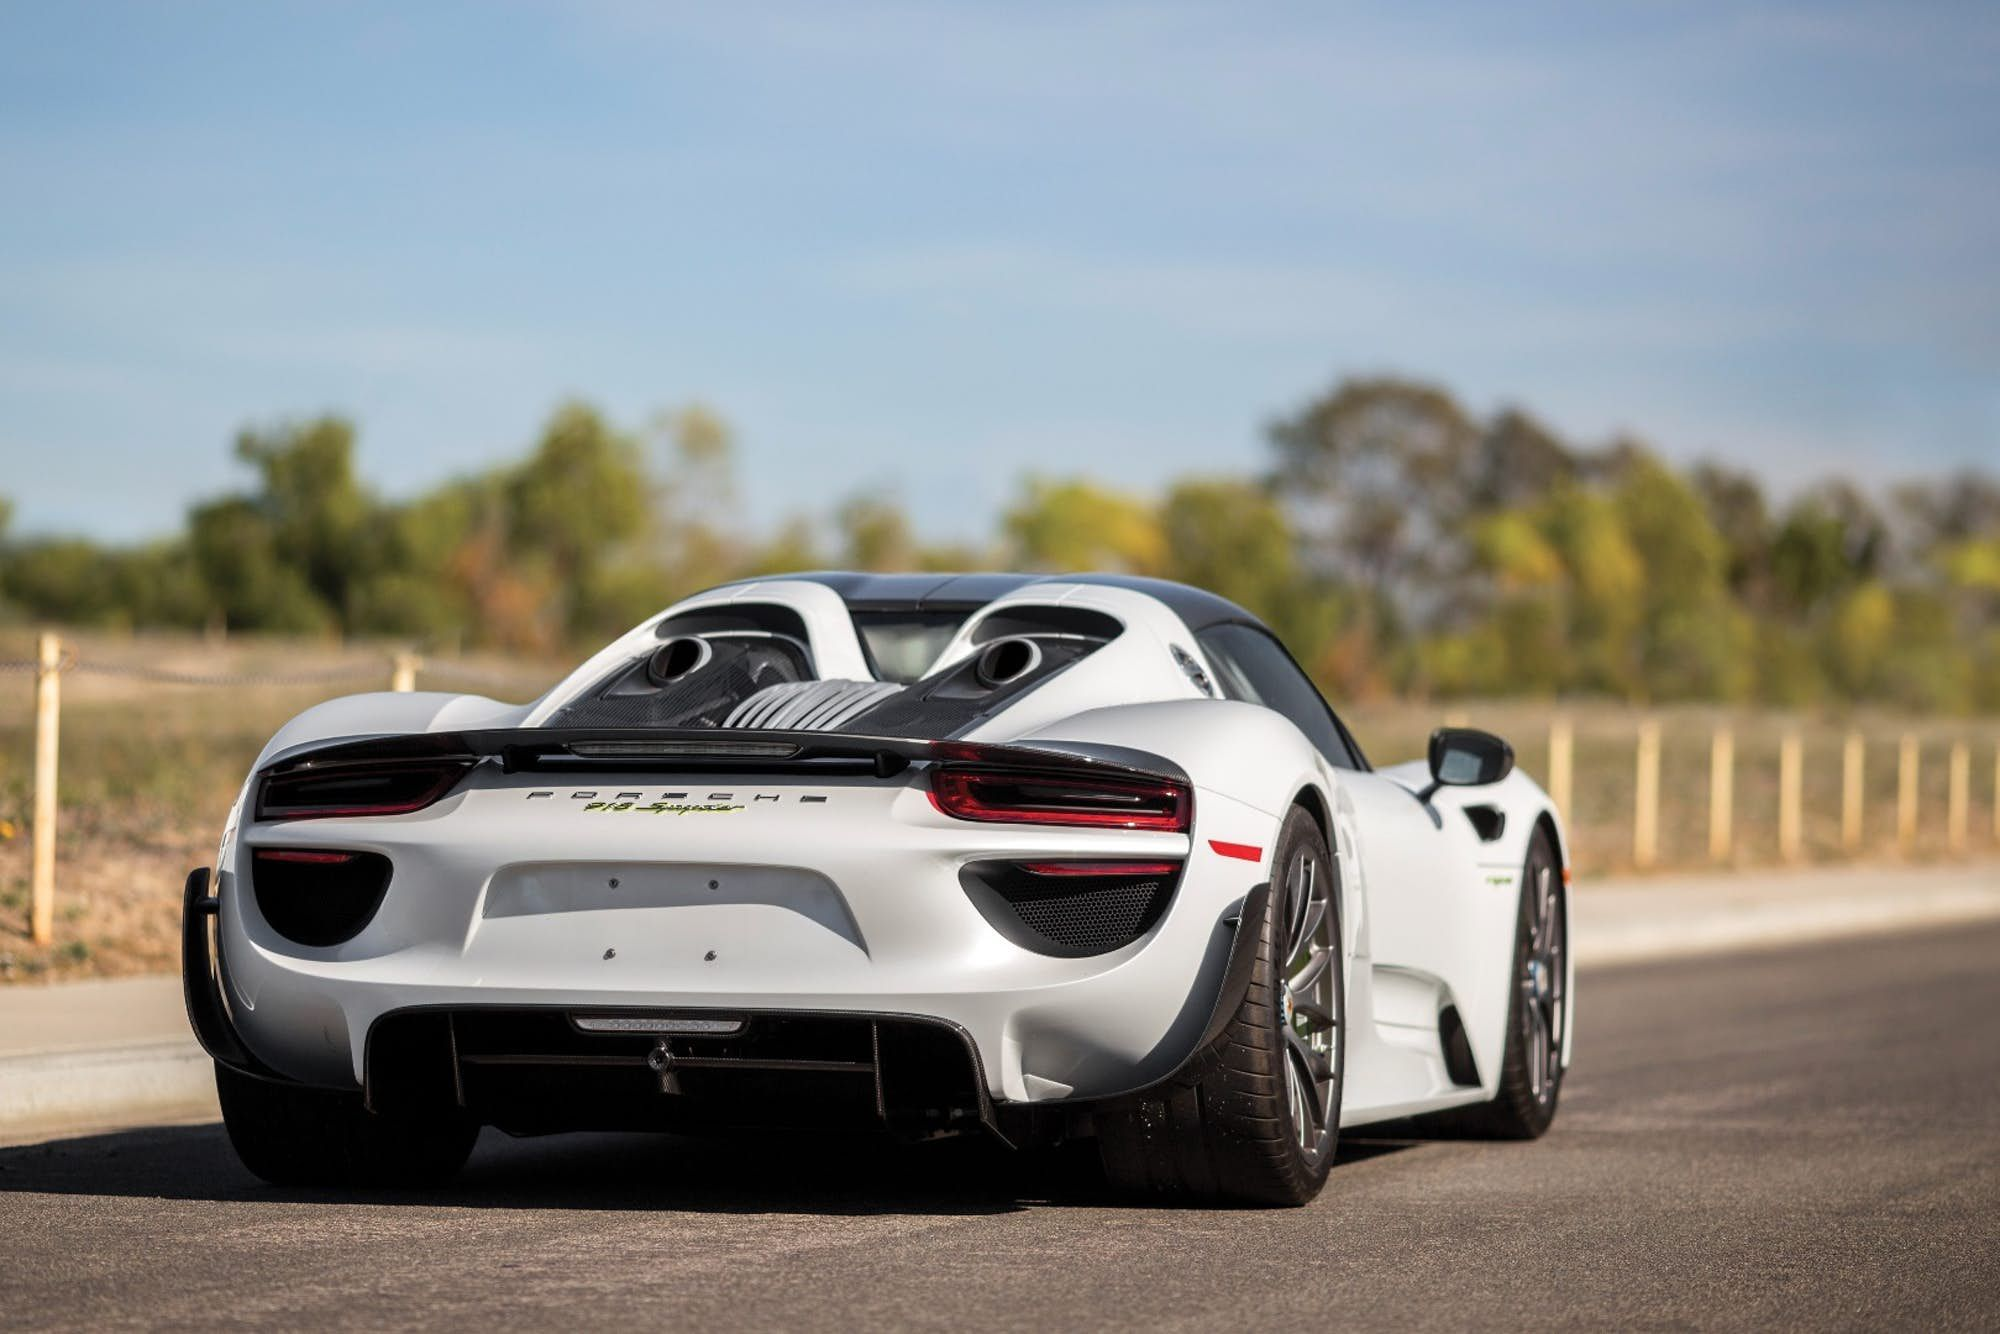 062d415f15076204350ad69a4bfb8bea Fascinating Porsche 918 Spyder Cost Uk Cars Trend